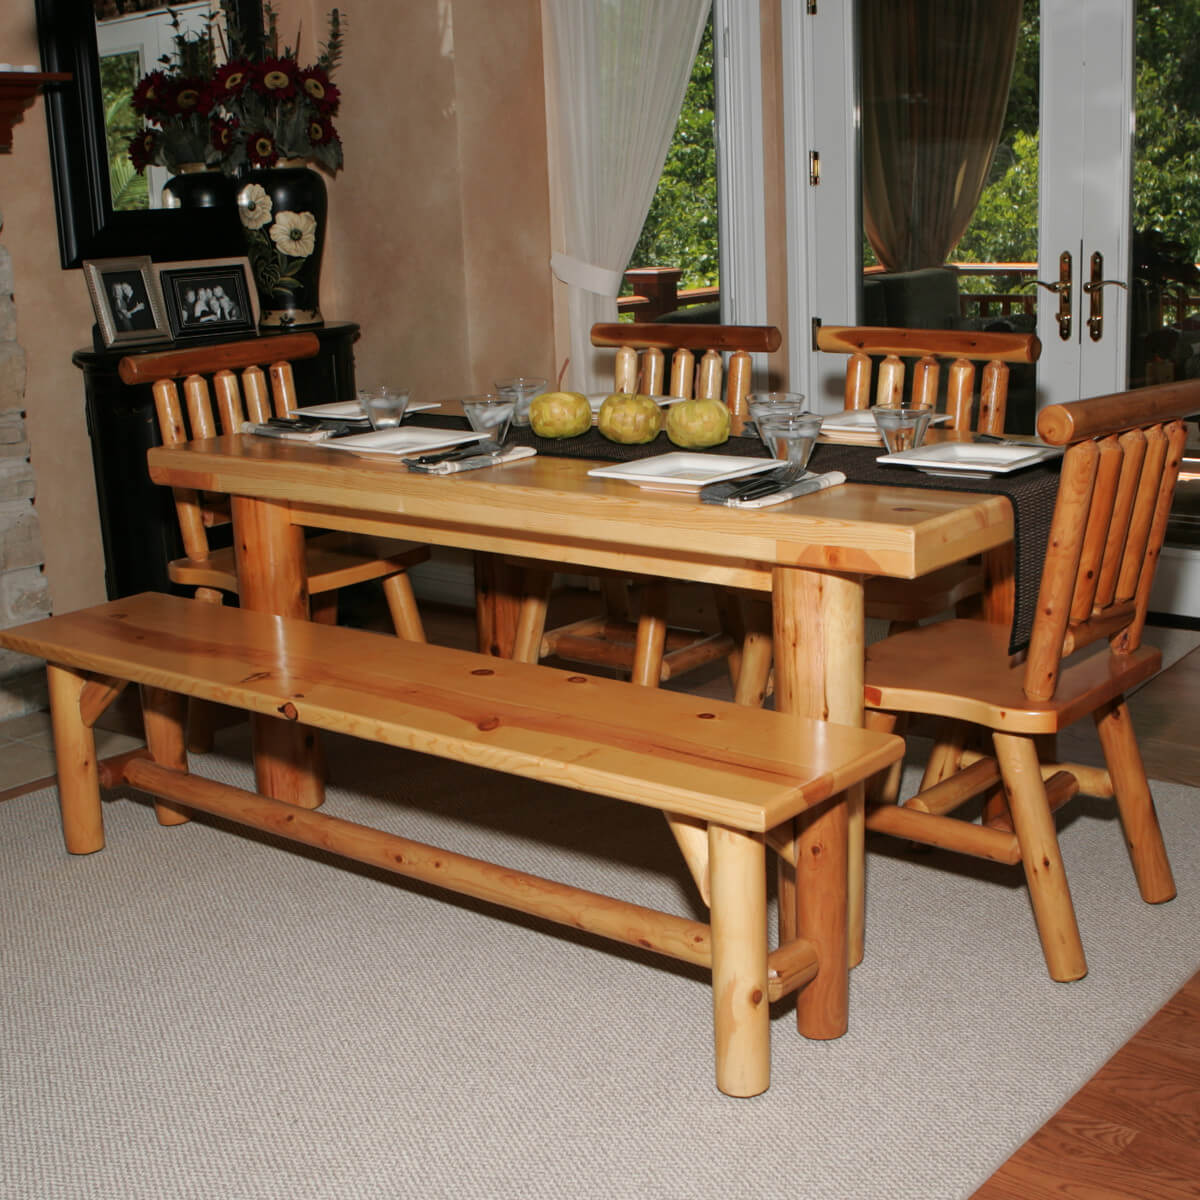 Dining Room Sets With A Bench: 26 Big & Small Dining Room Sets With Bench Seating